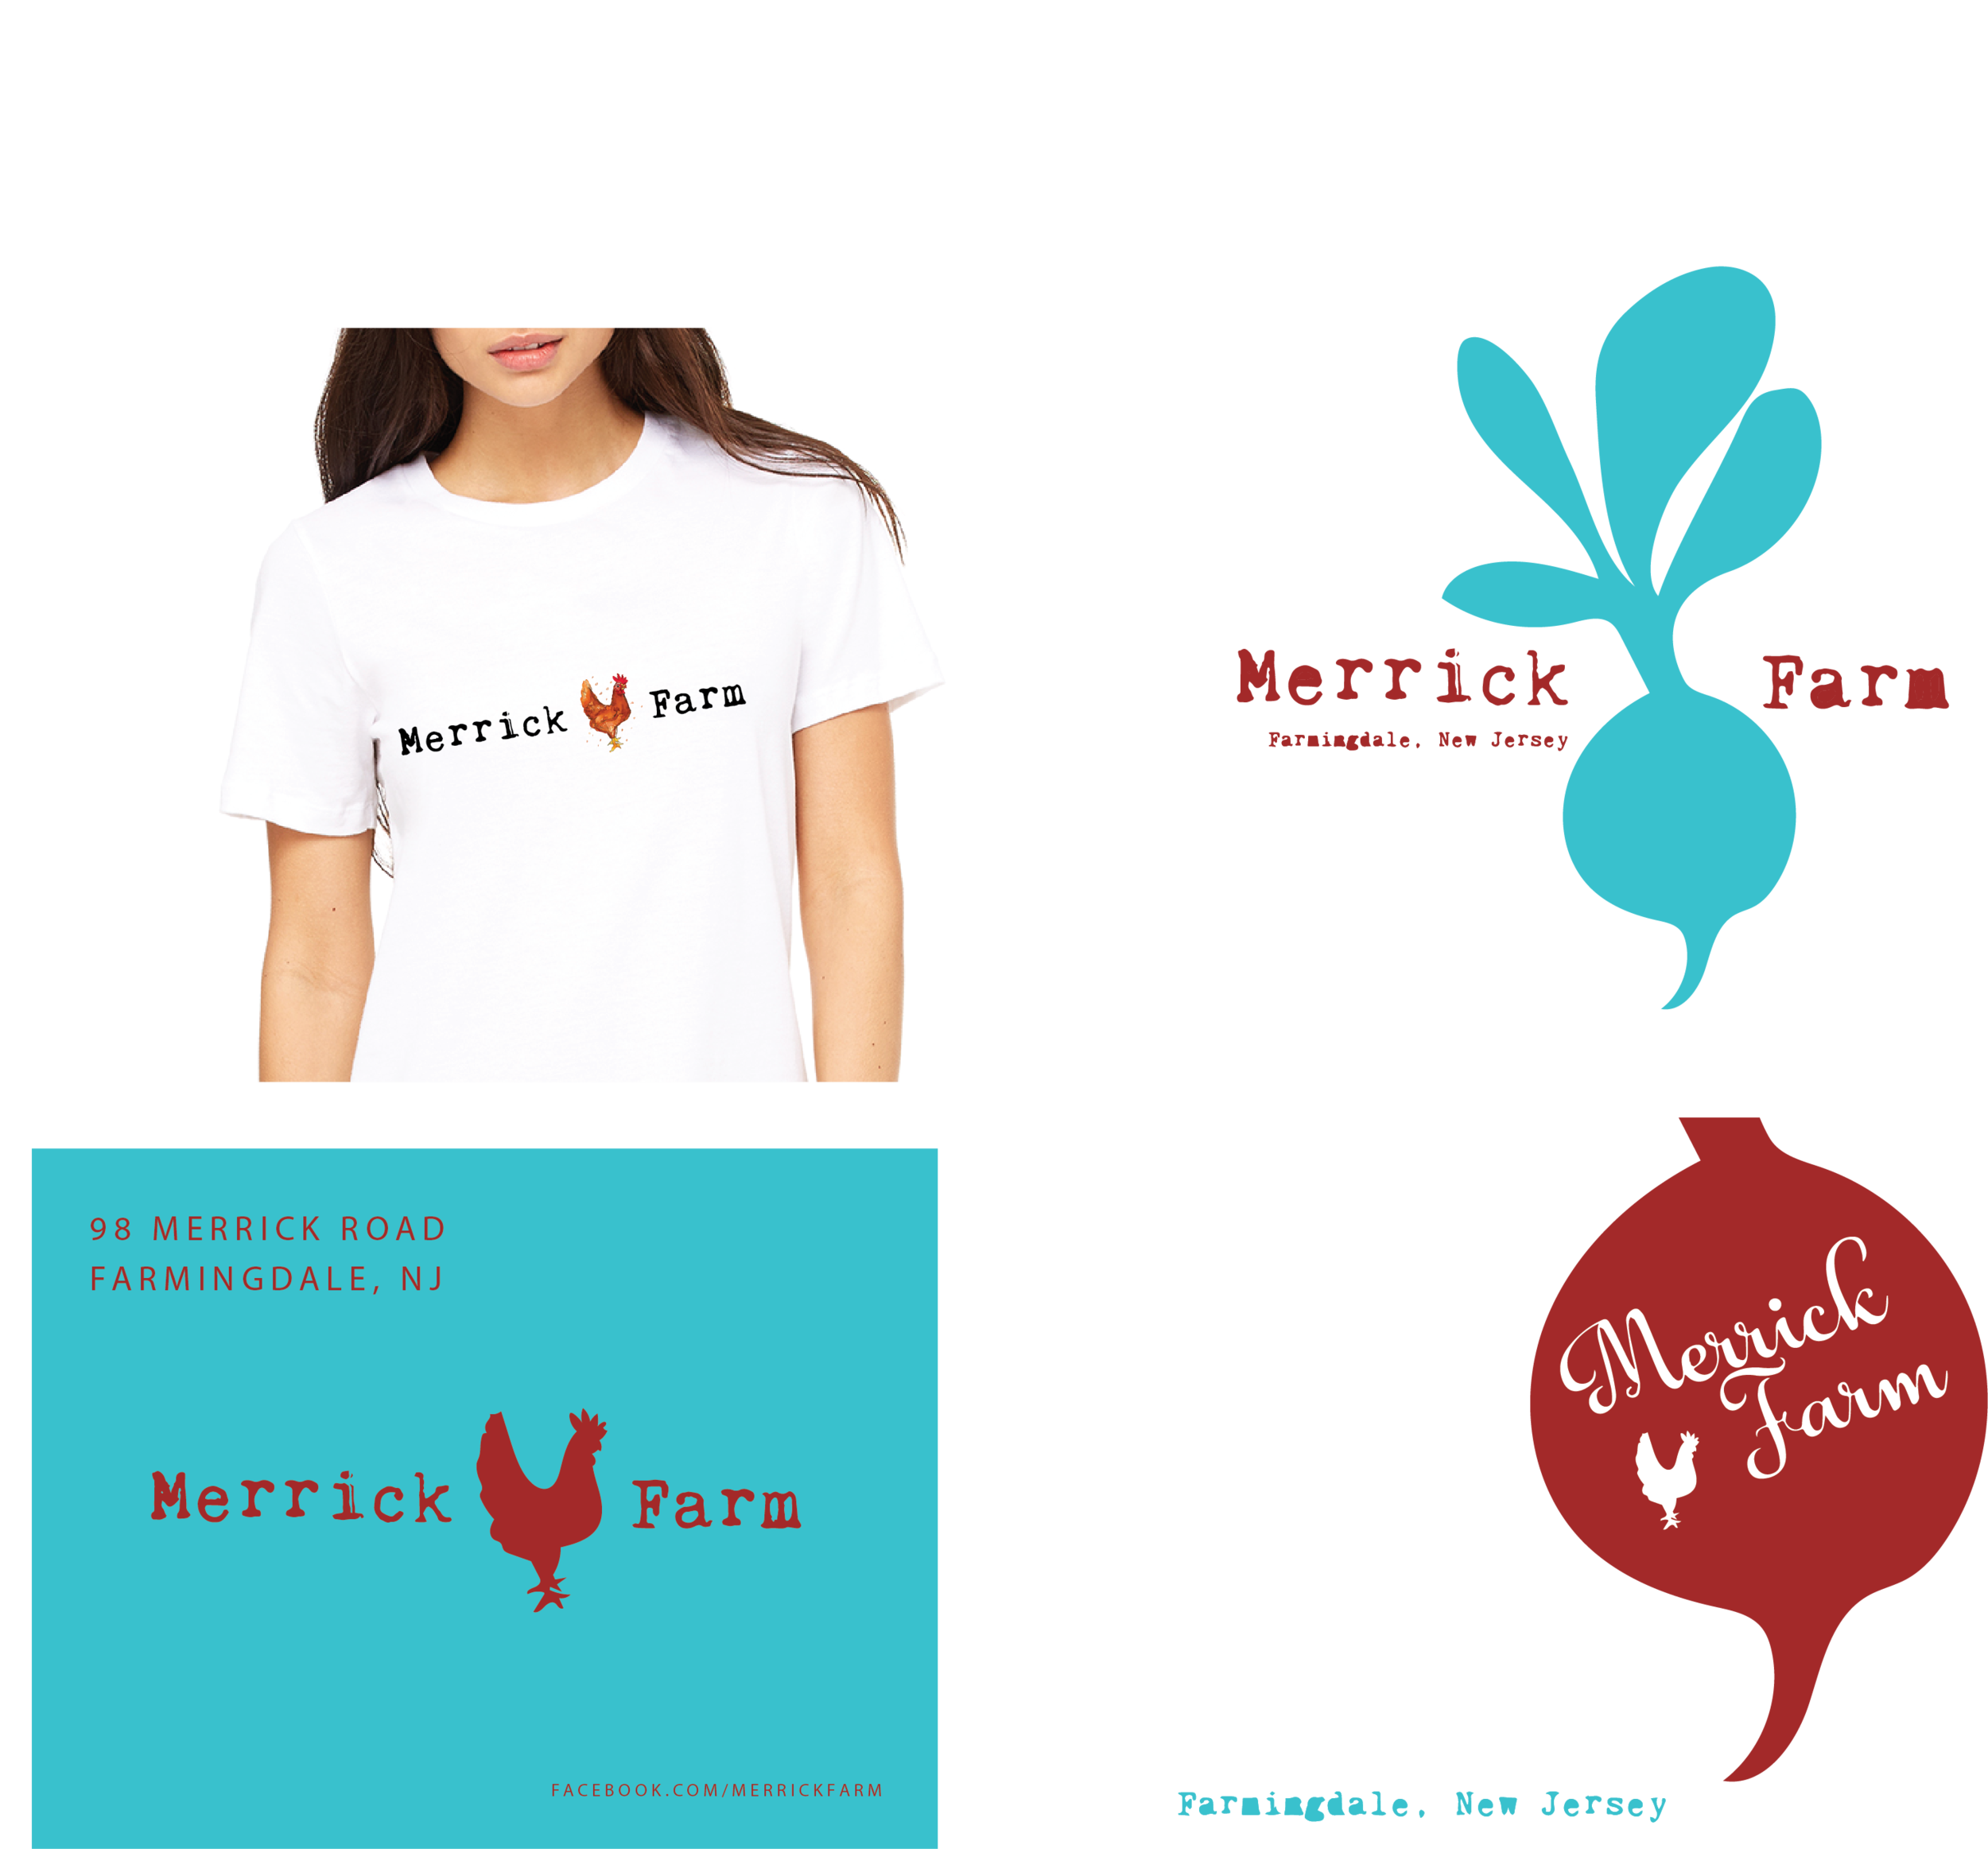 Merrick Farm - A farm in New Jersey that sells to local restaurants. Marketing materials and branding.